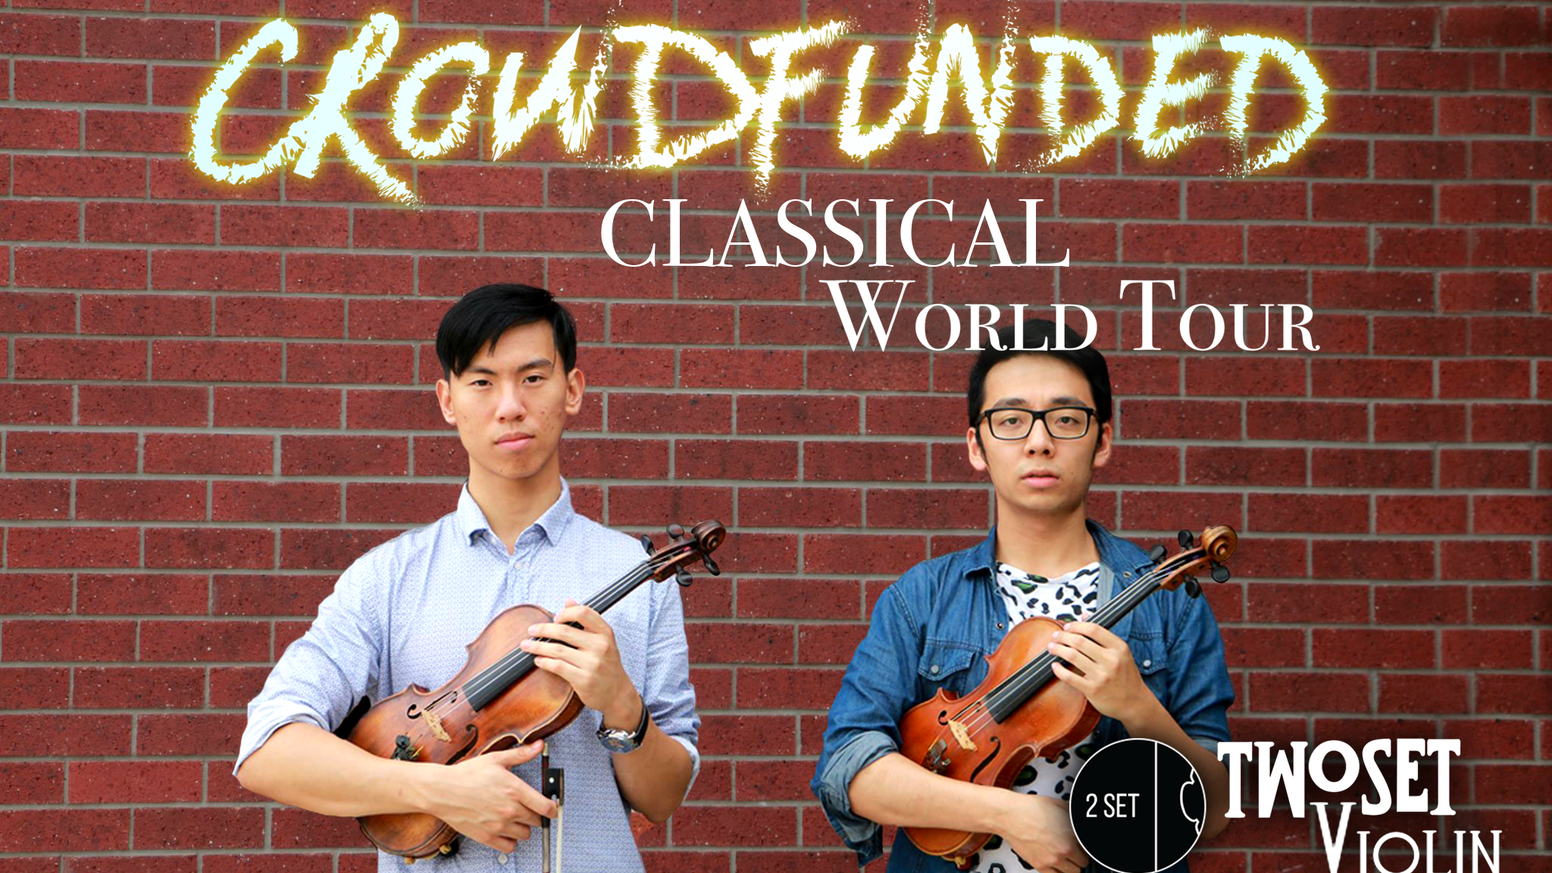 First Crowdfunded Classical World Tour By Twoset Violin Kickstarter